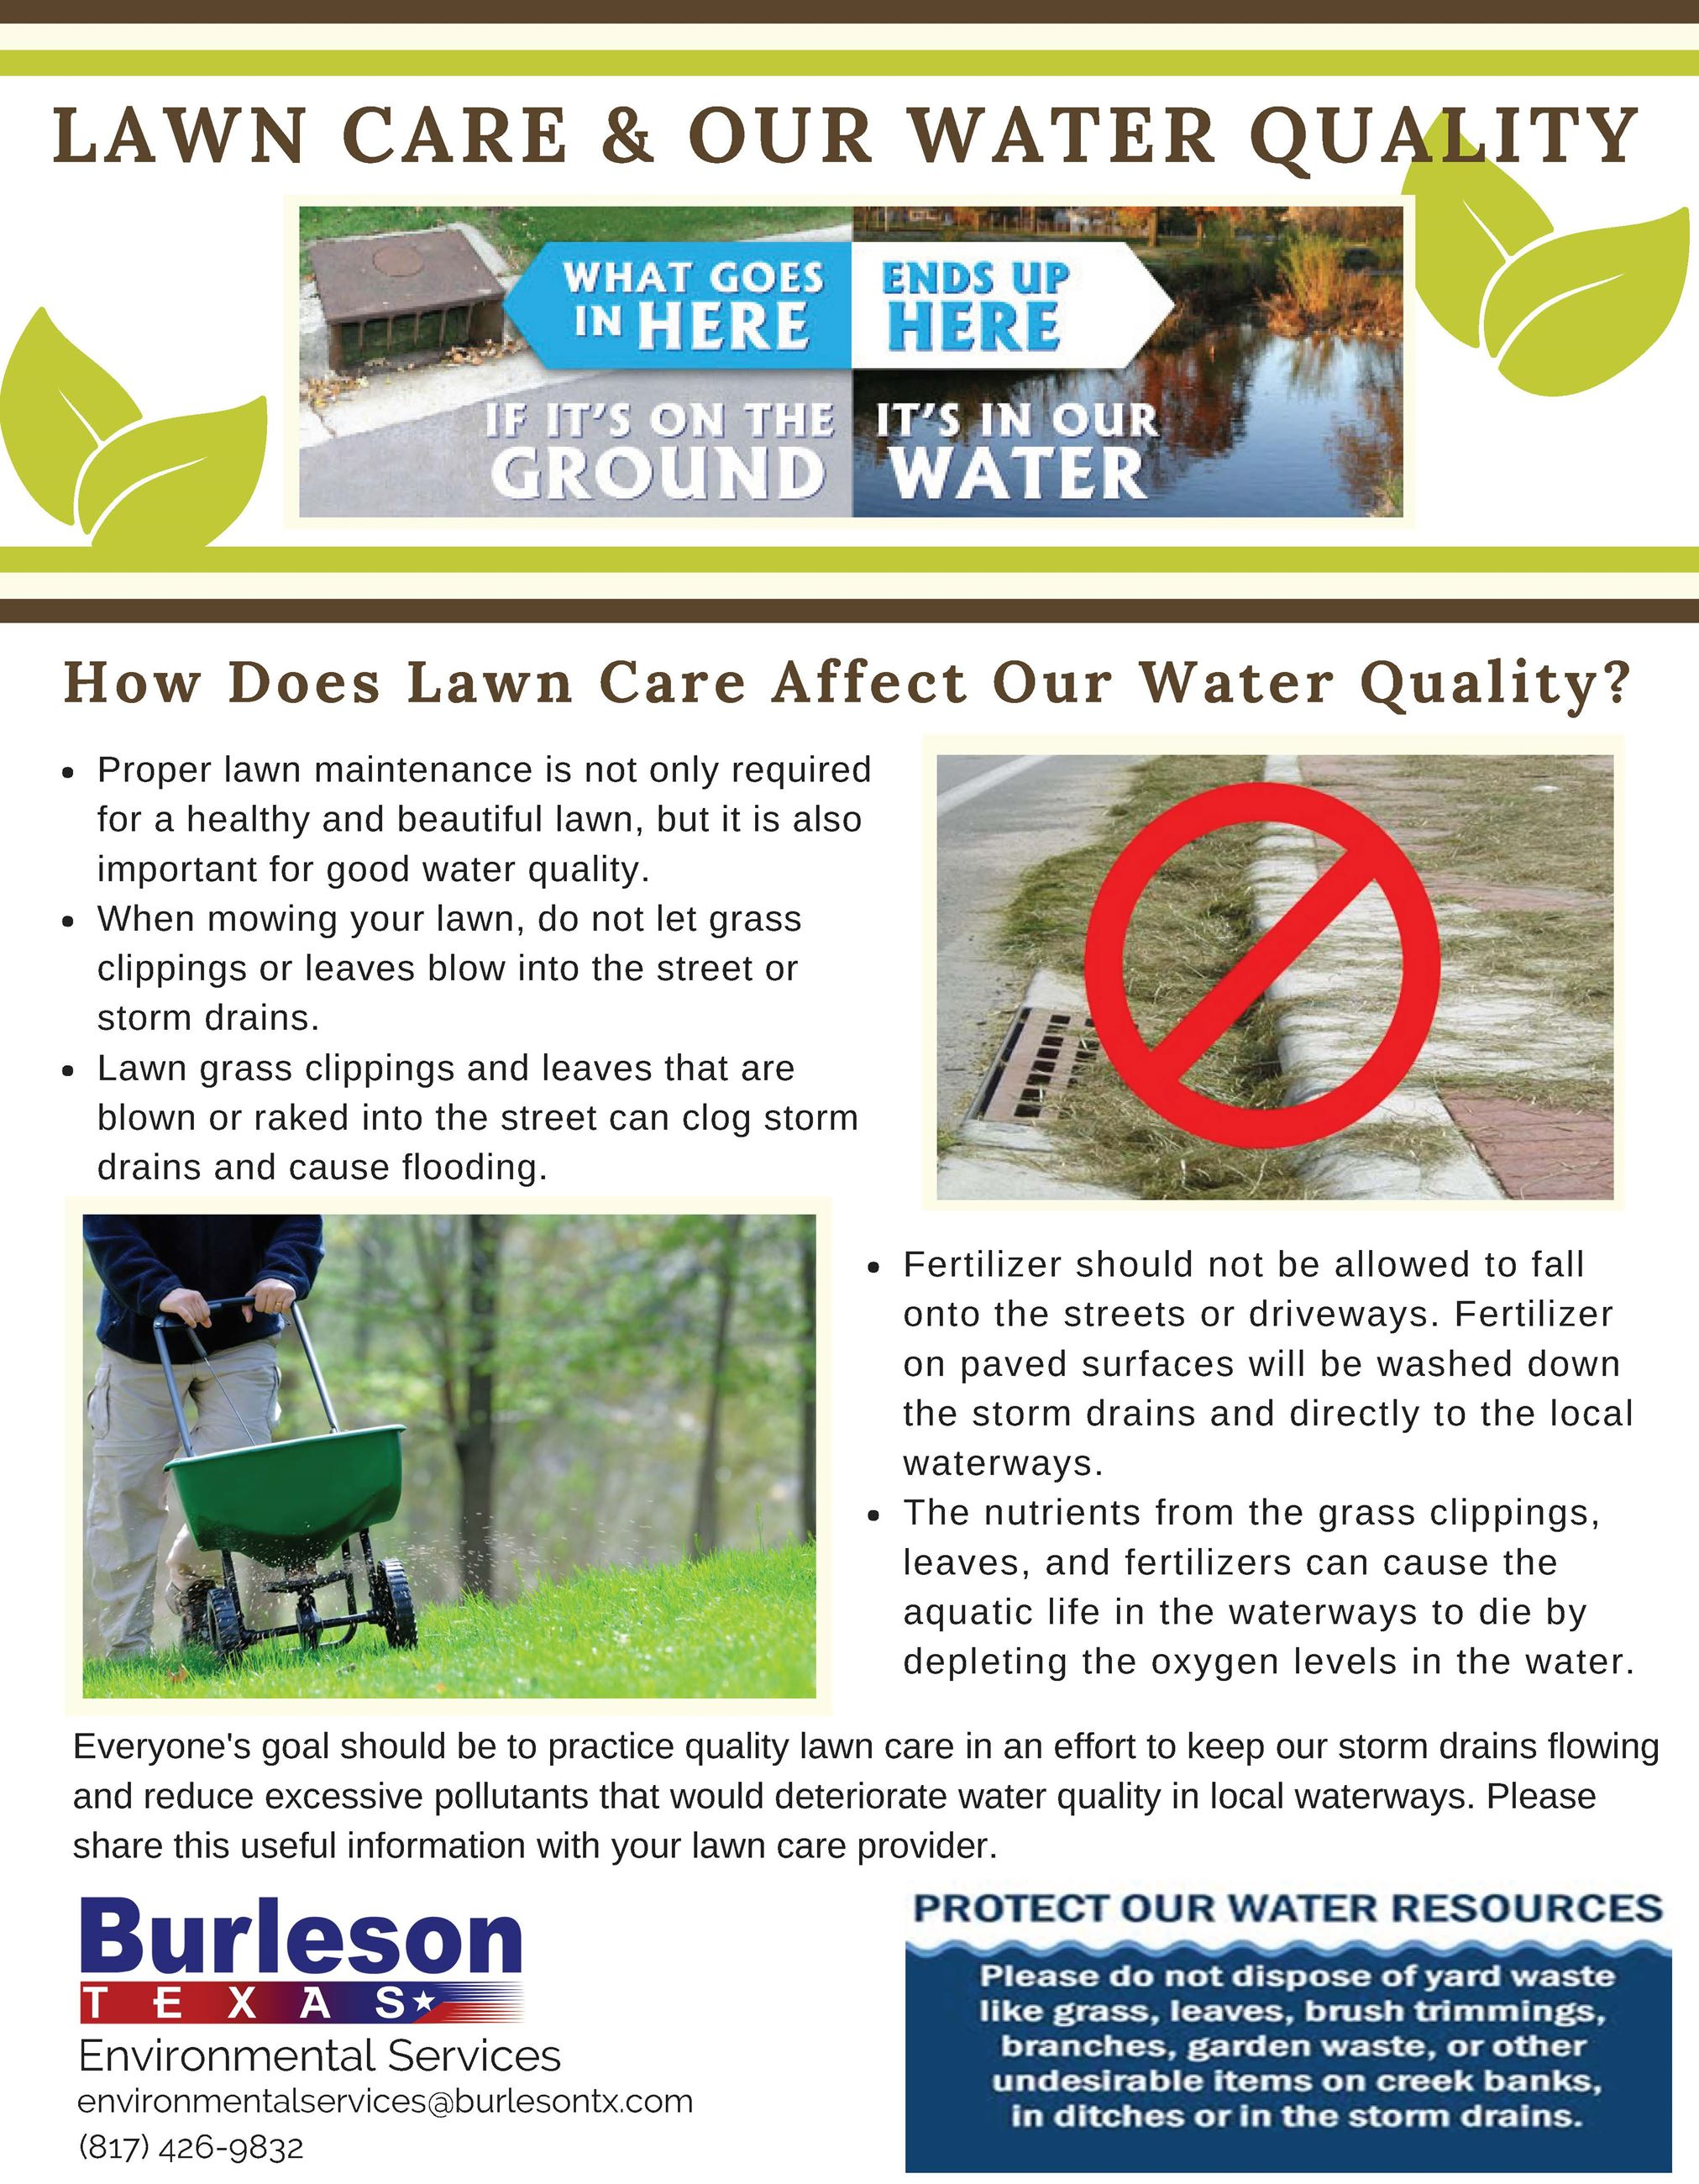 Lawn Care and Our Water Quality